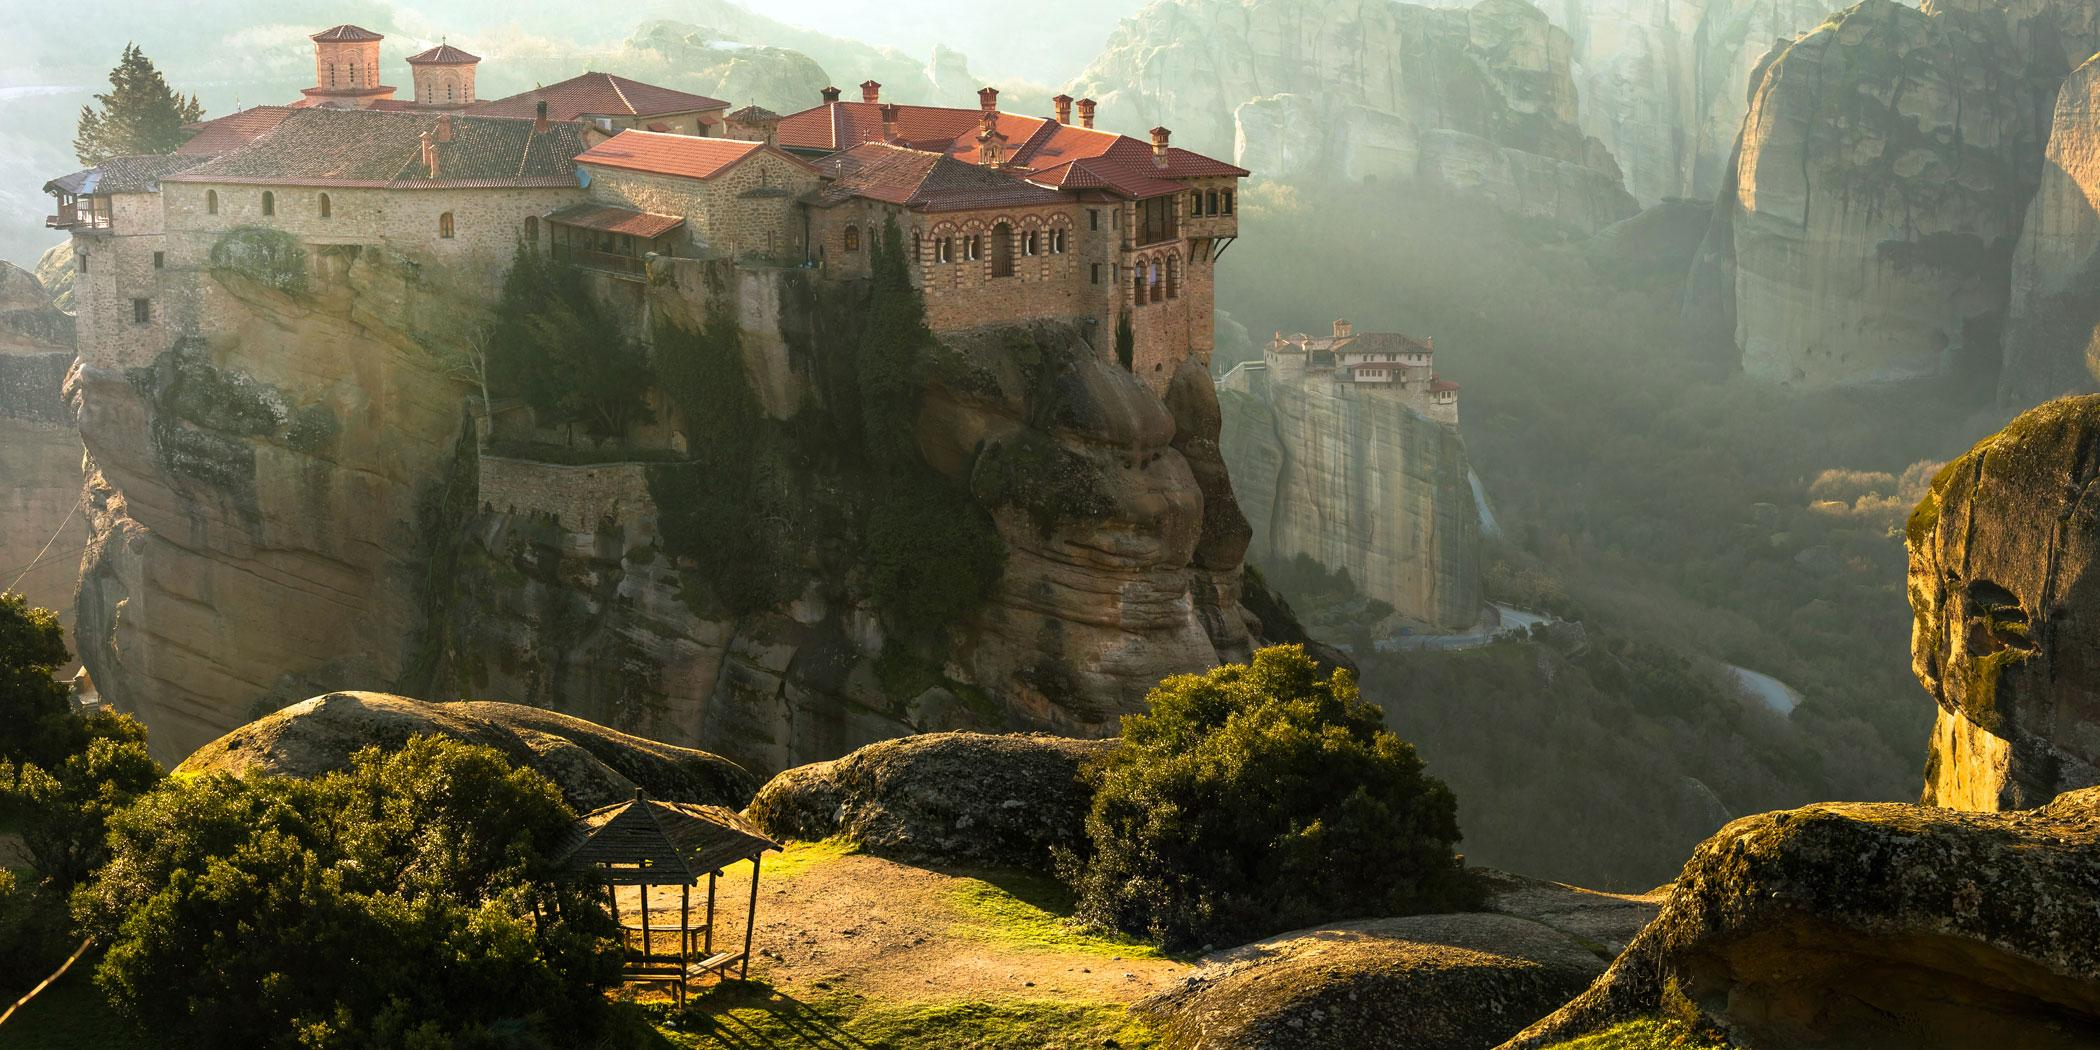 Mysterious hanging over rocks monasteries of Meteora, Greece Photo: Adobe Stock